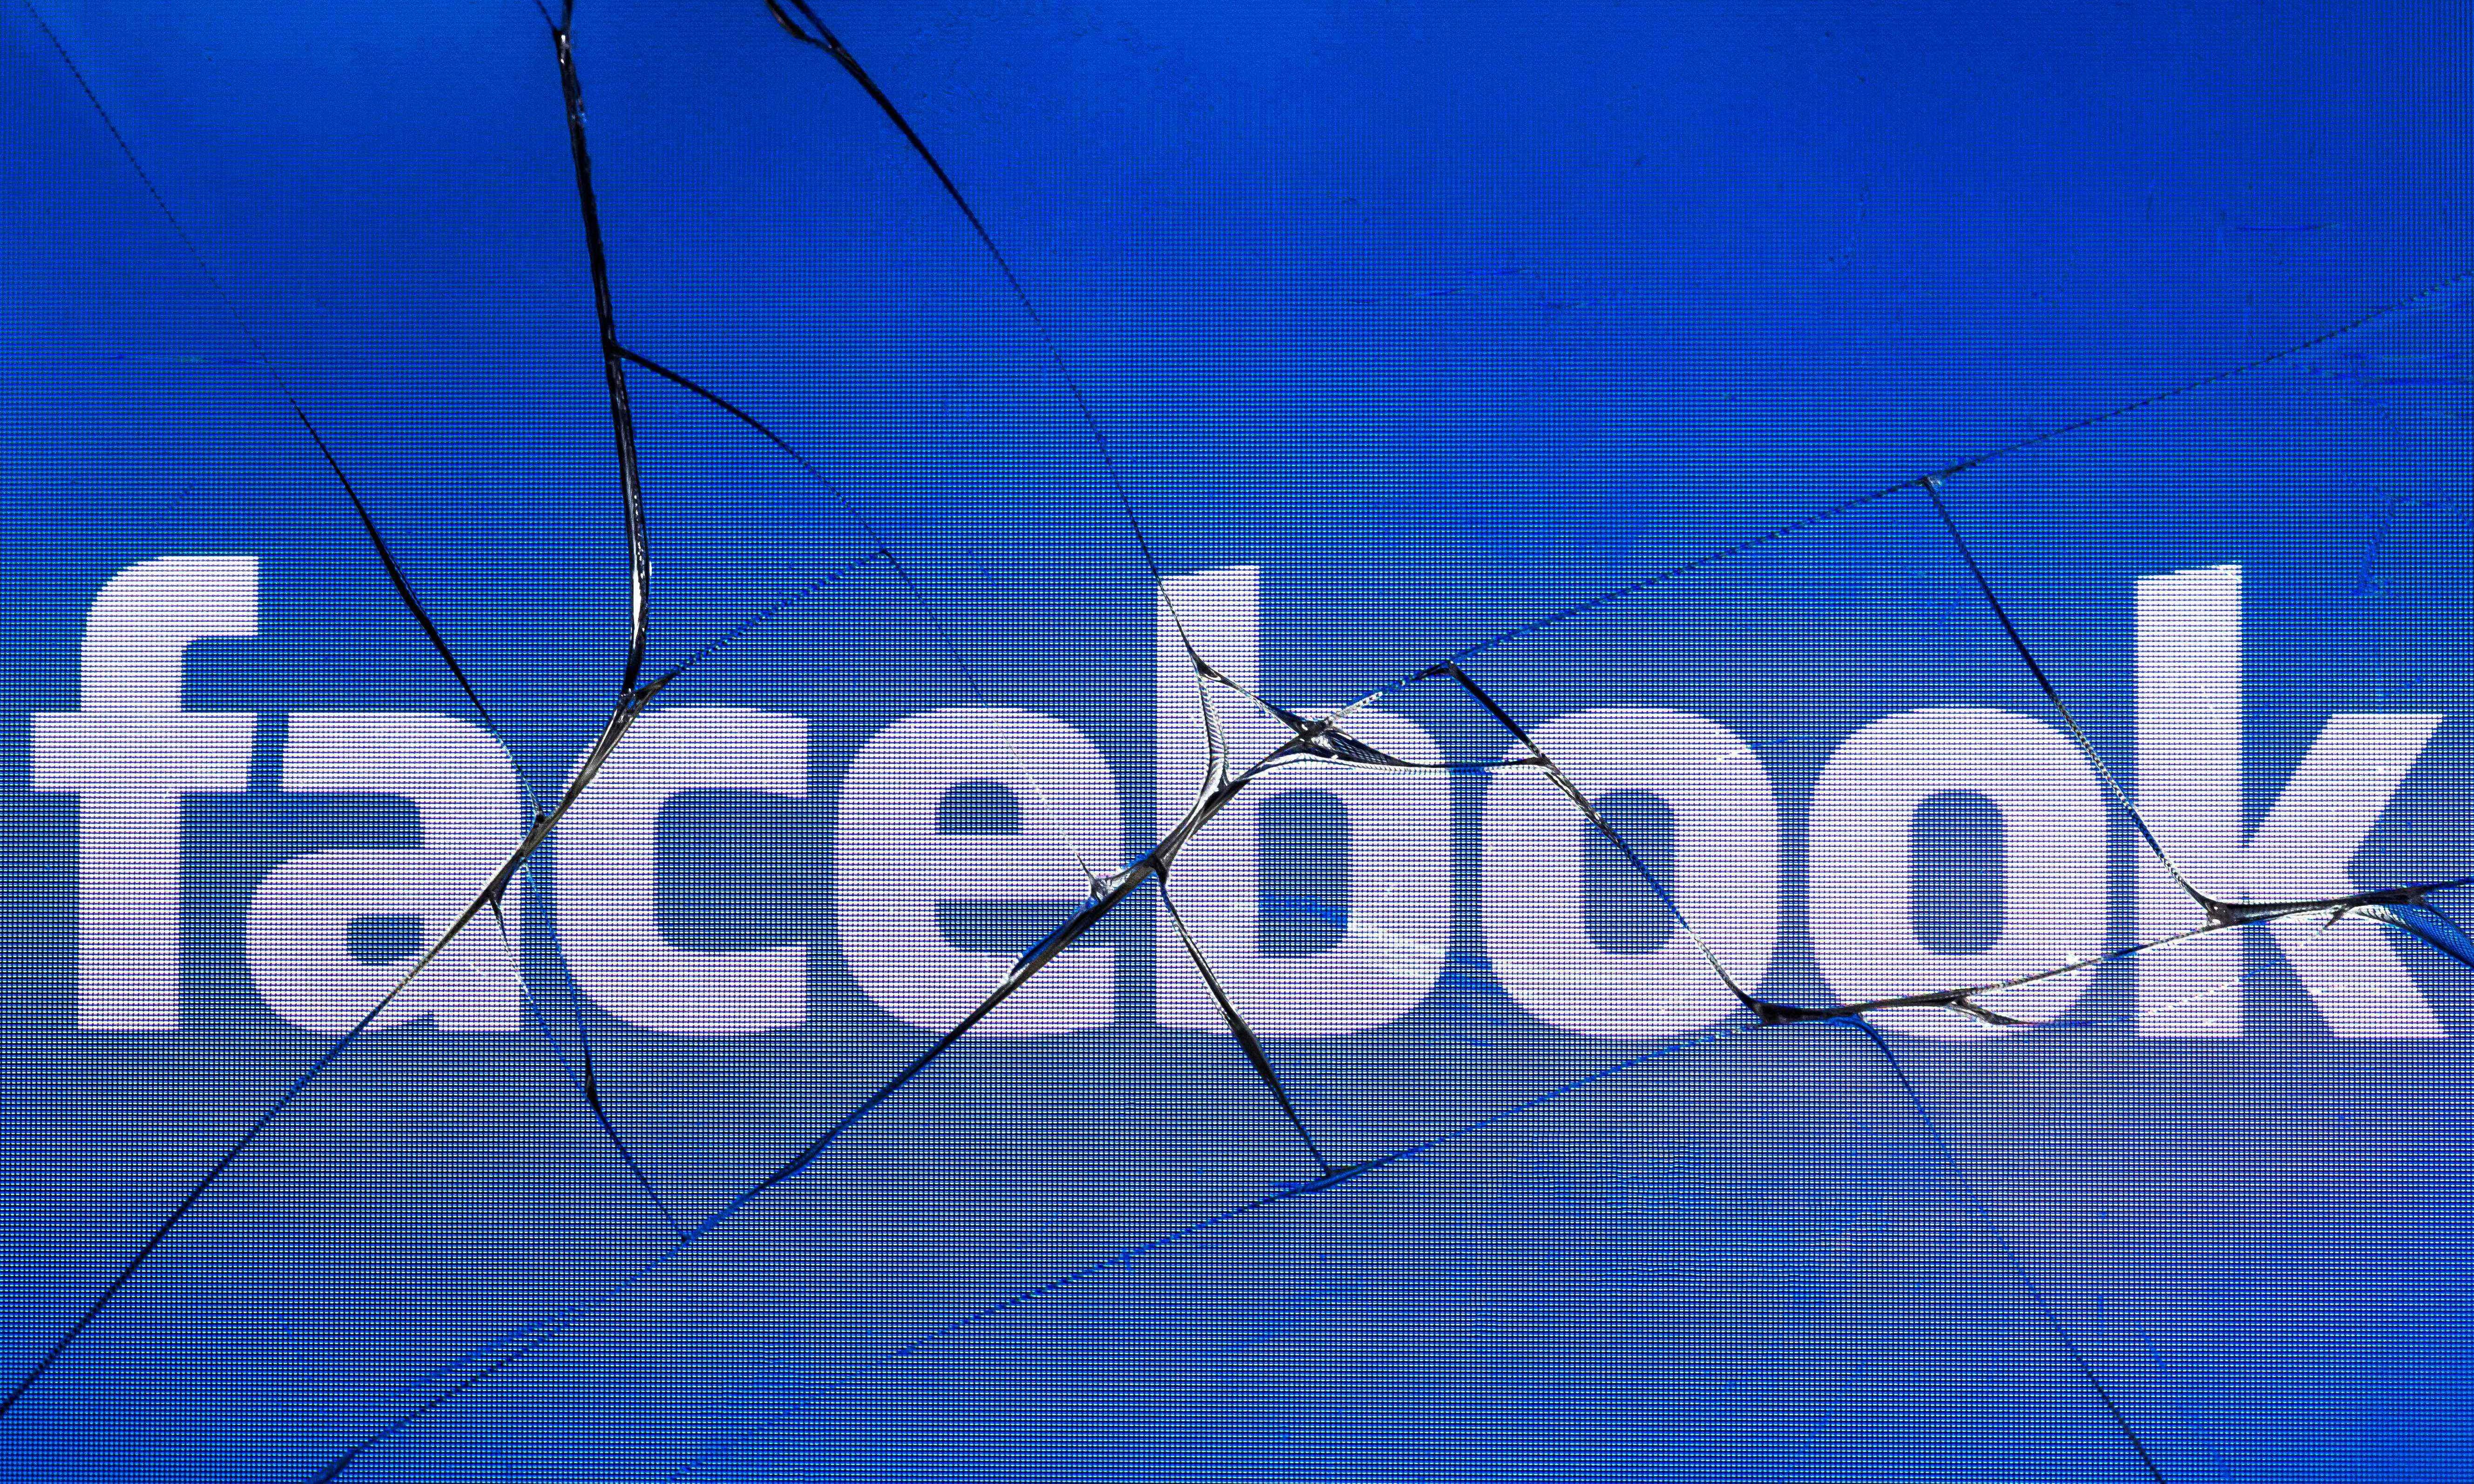 Facebook charged with housing discrimination in targeted ads